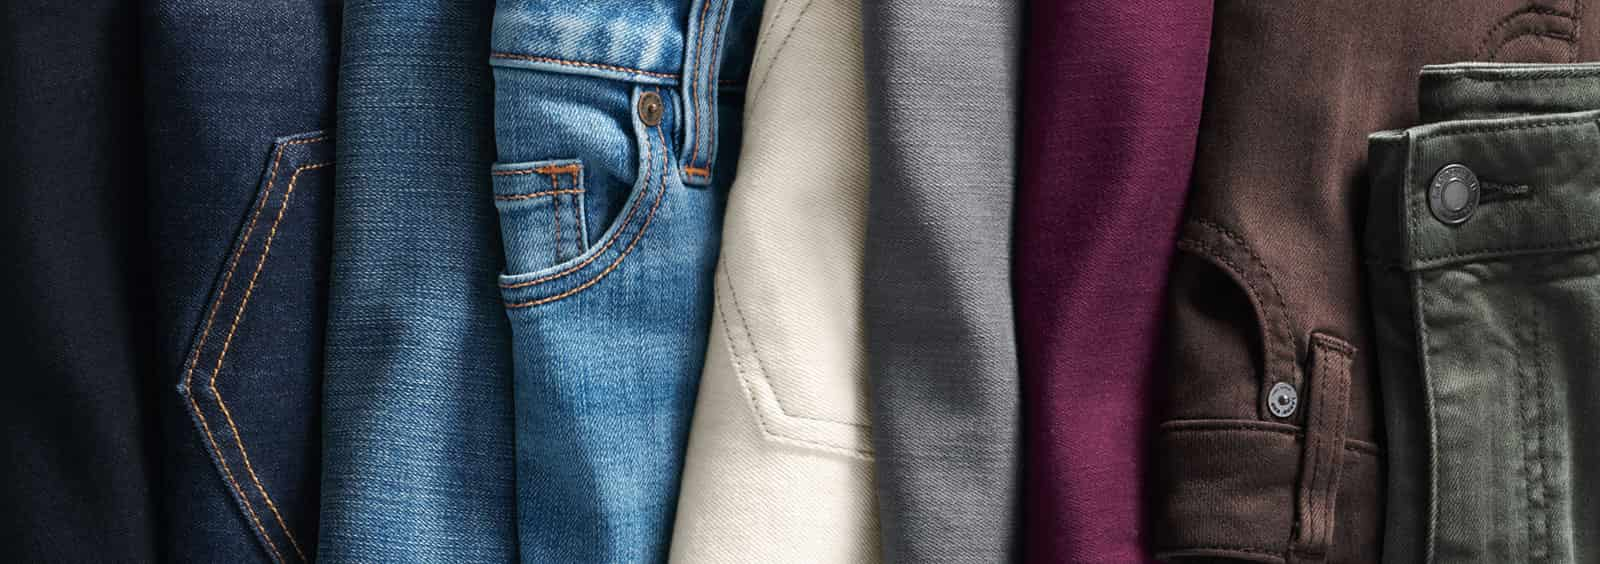 High-Rise Jeans You Need This Fall